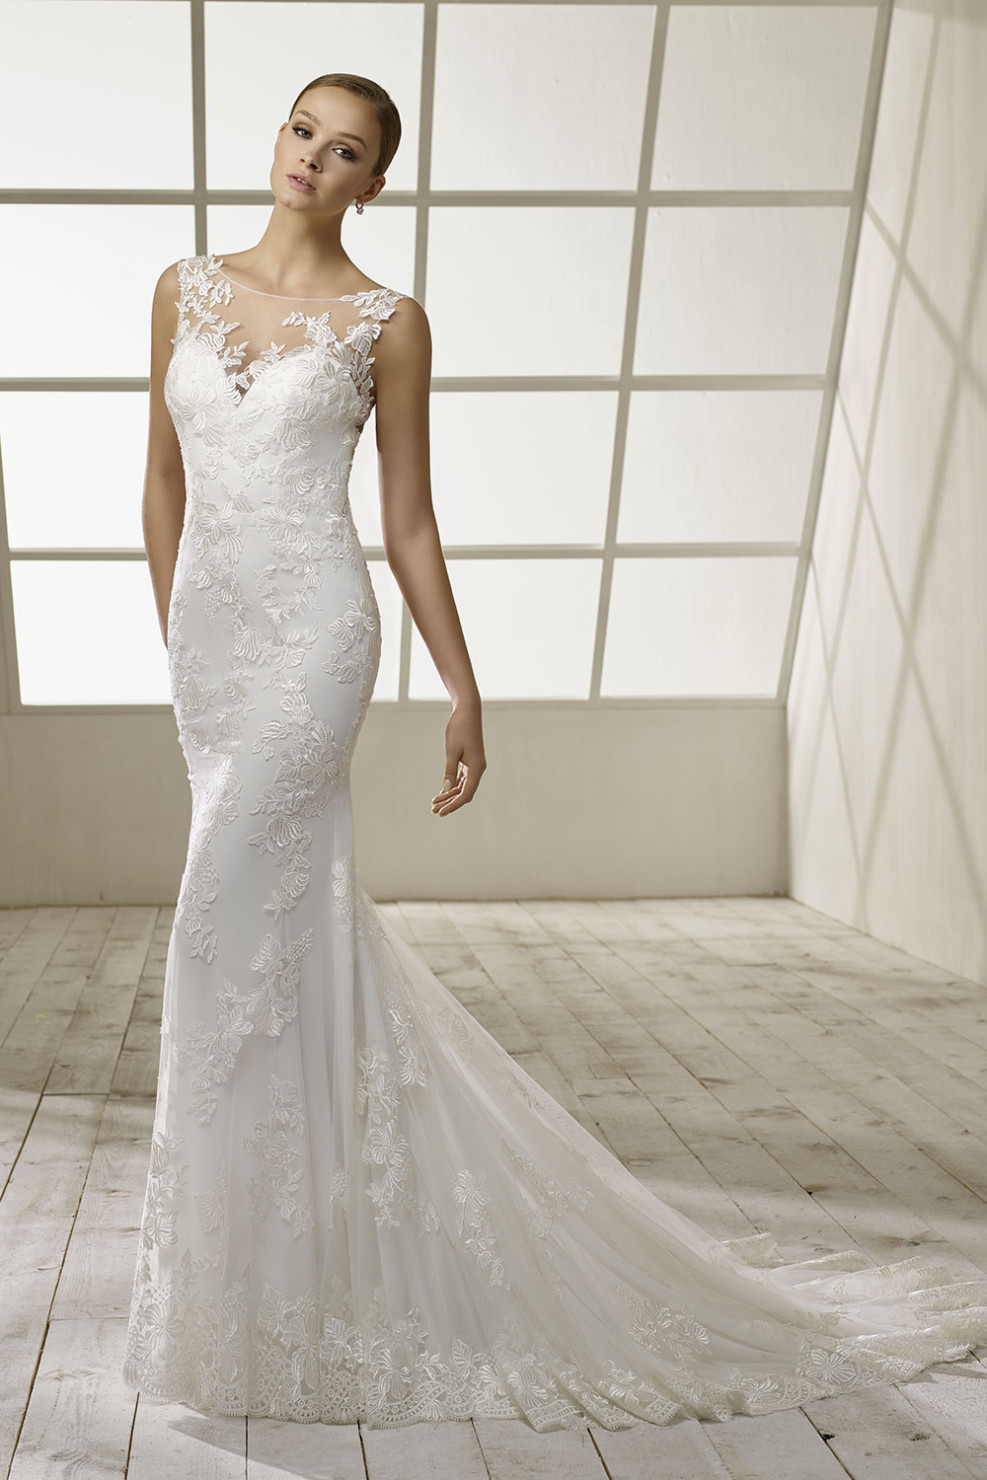 STYLE 192.11 - Morelle Mariage